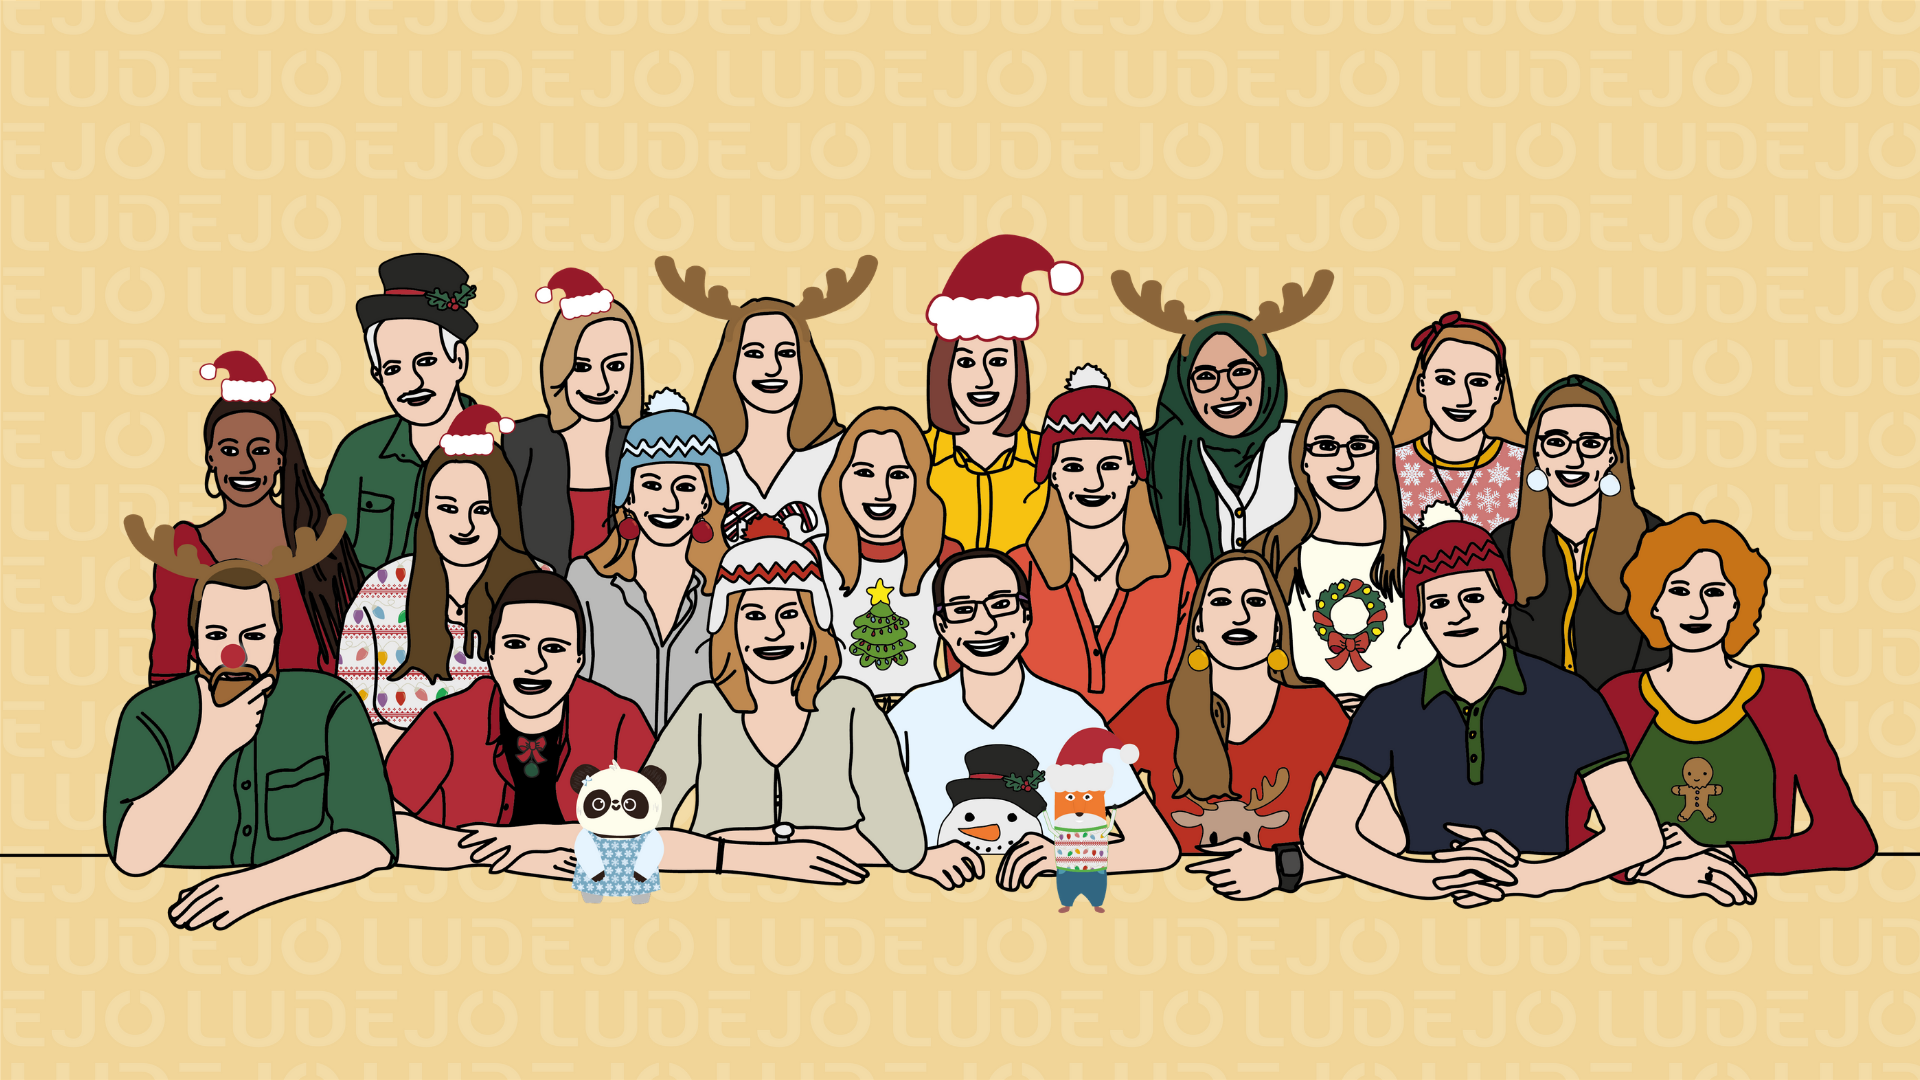 Christmas team image with all members of Ludejo in festive outfits - animated